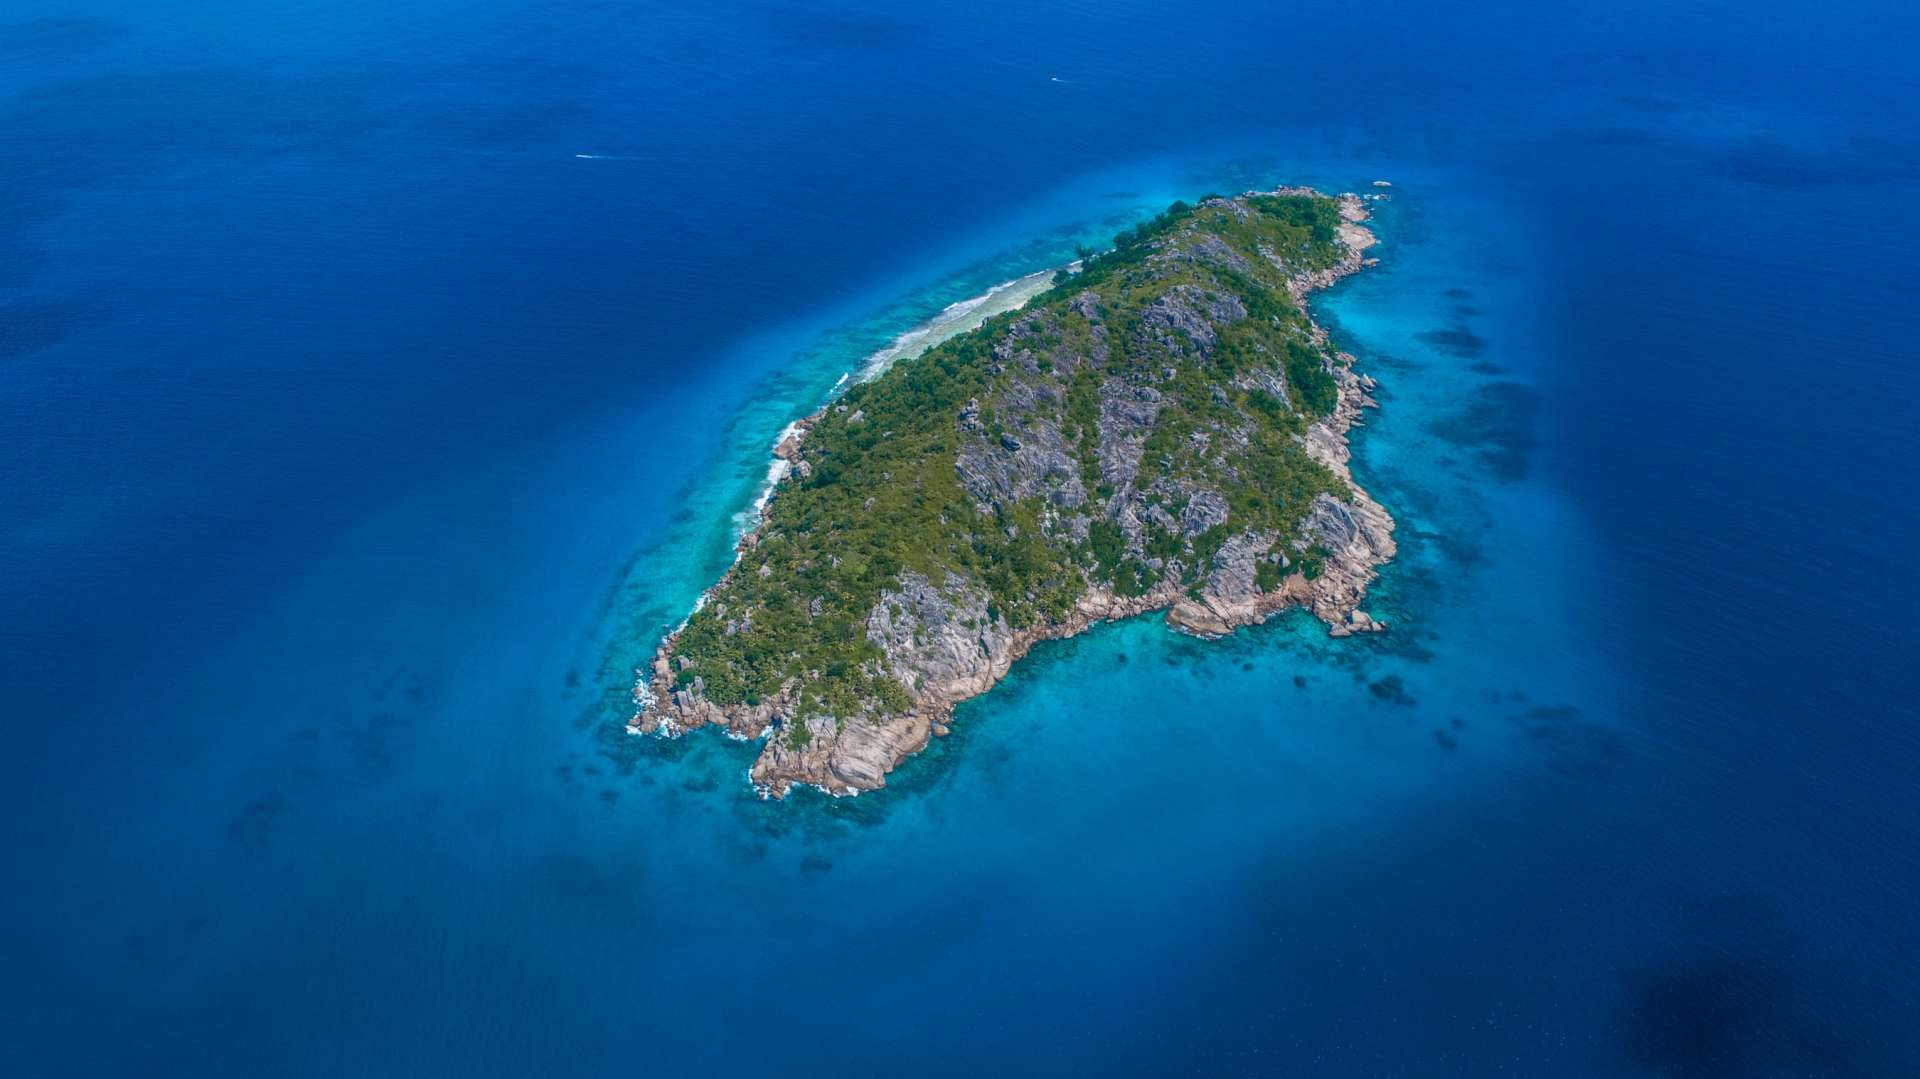 Seychelles Petite Soeur Little Sister Island drone aerial view enrico pescantini from above